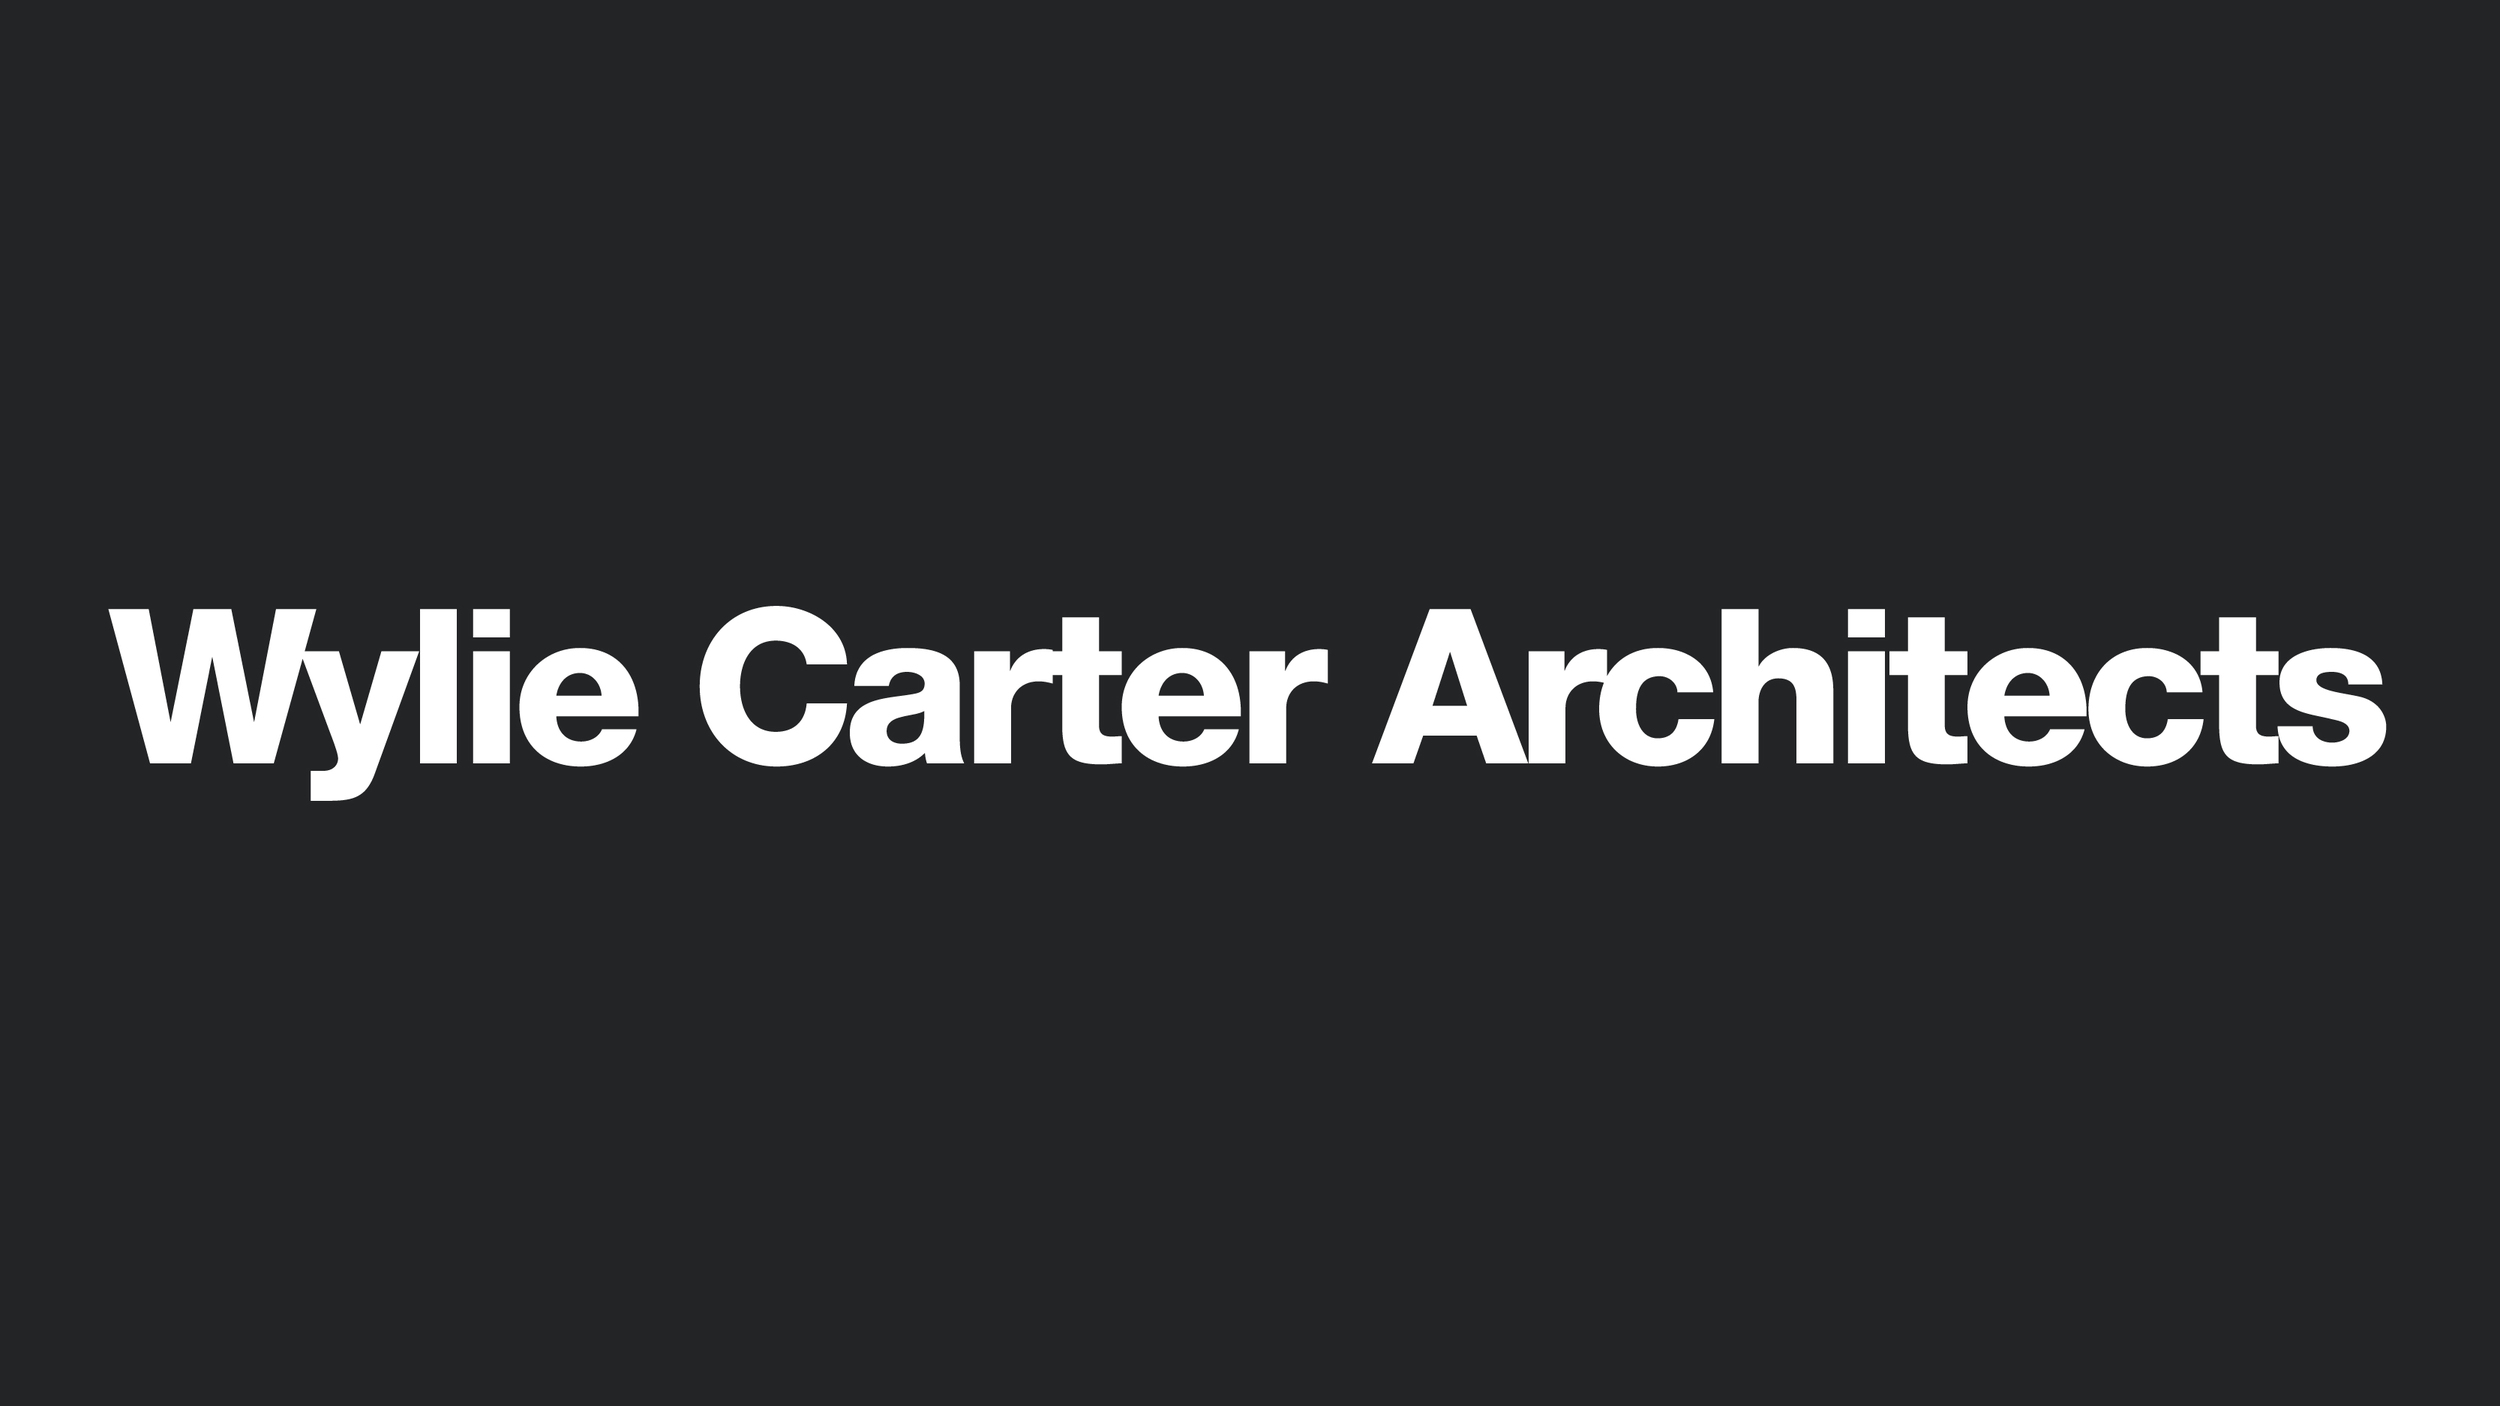 Wylie Carter Architects